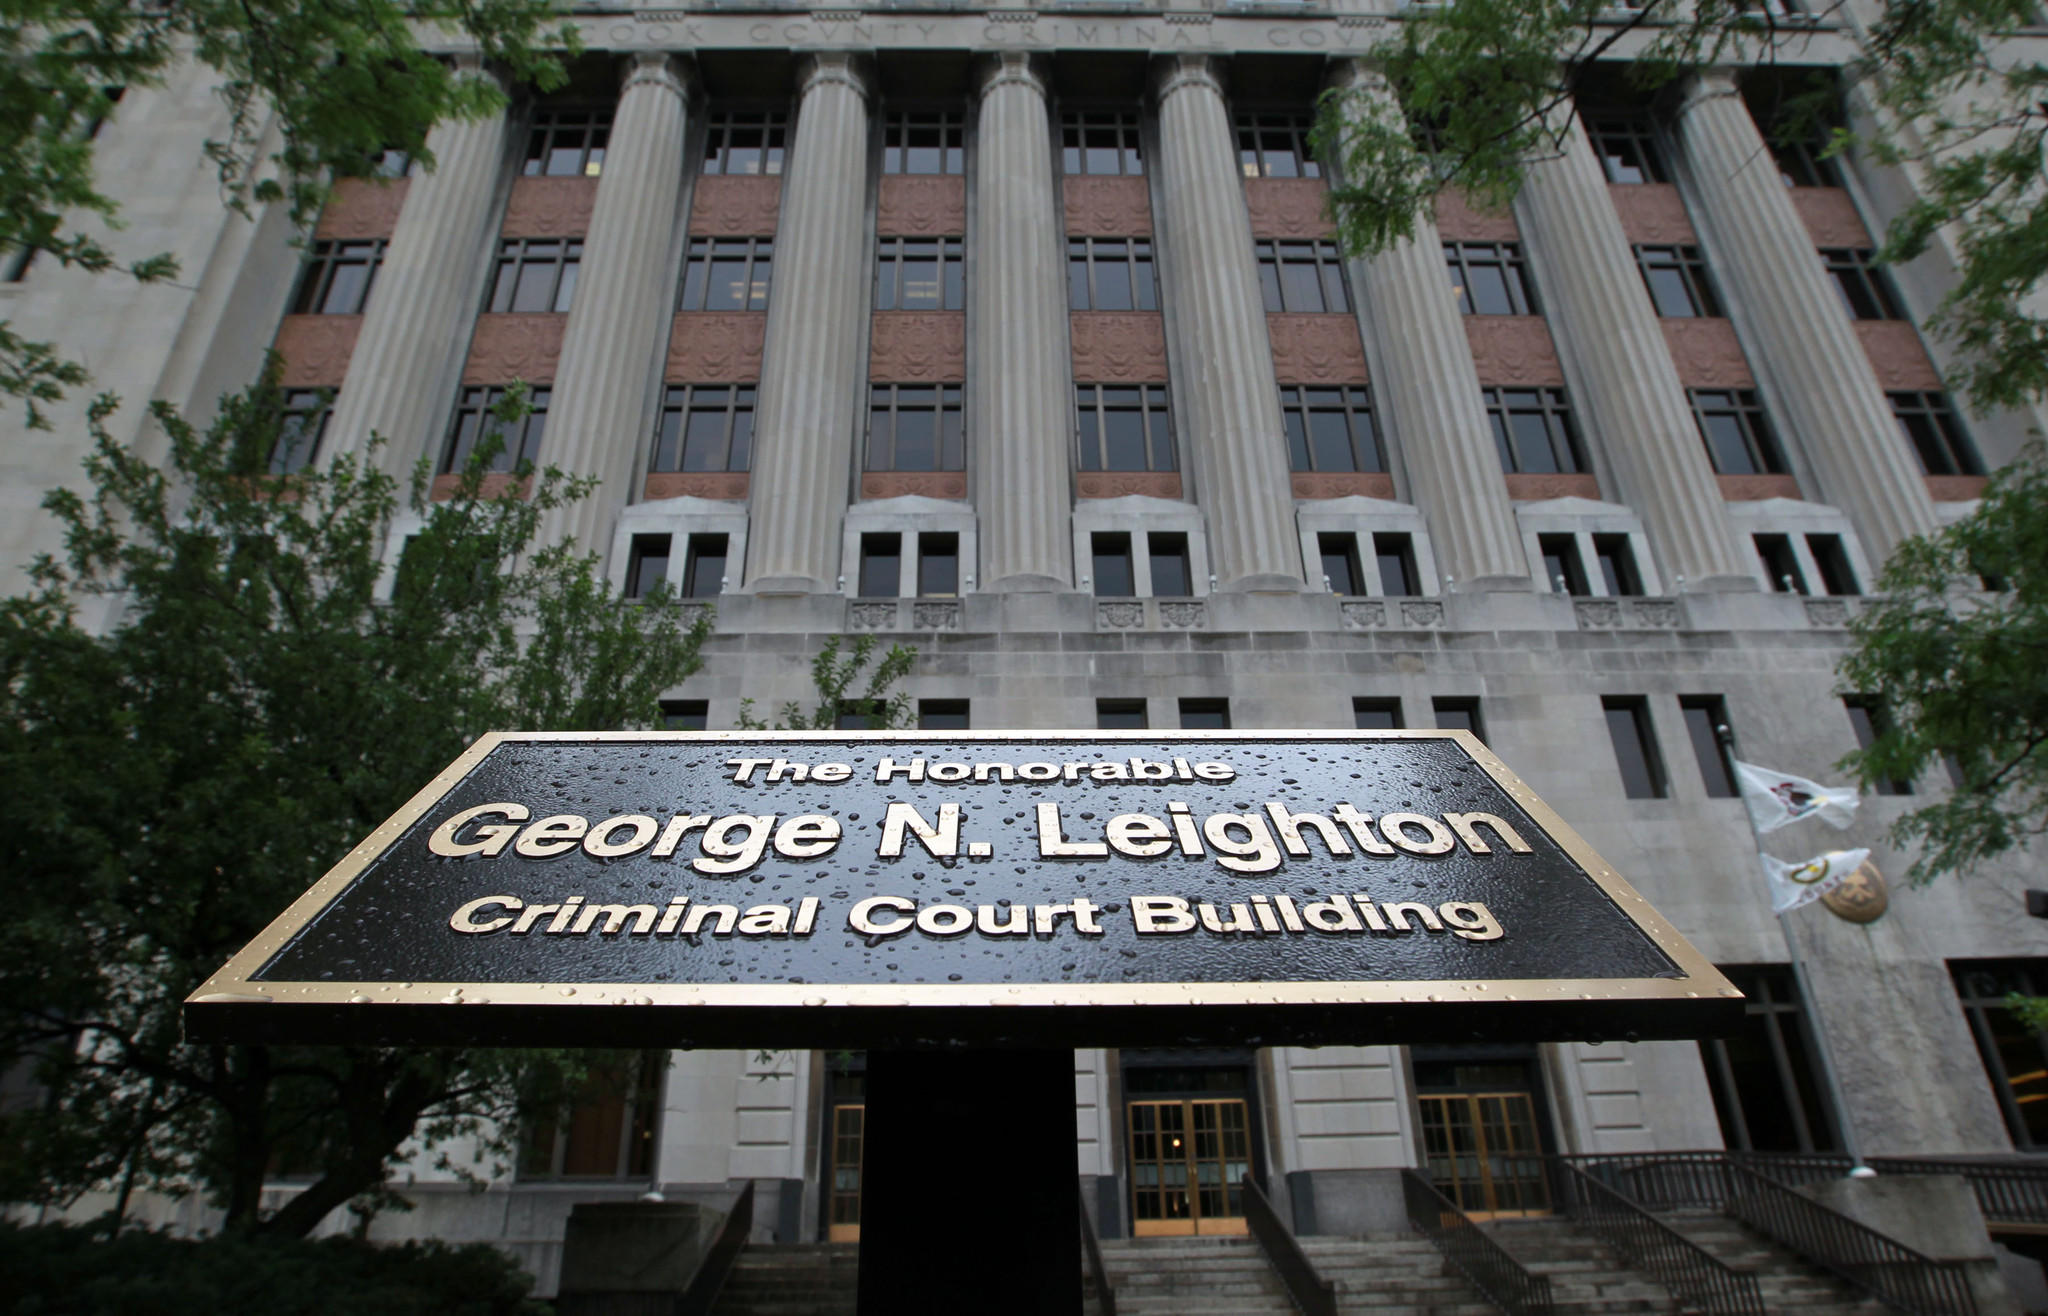 The Illinois Supreme Court struck down the state's eavesdropping law, one of the strictest in the nation that made audio recording of any person, even in public, illegal unless that person gave their consent. The case involves Annabel Melongo, who recorded three telephone conversations she had with a court reporter supervisor at the George Leighton Criminal Courts complex.